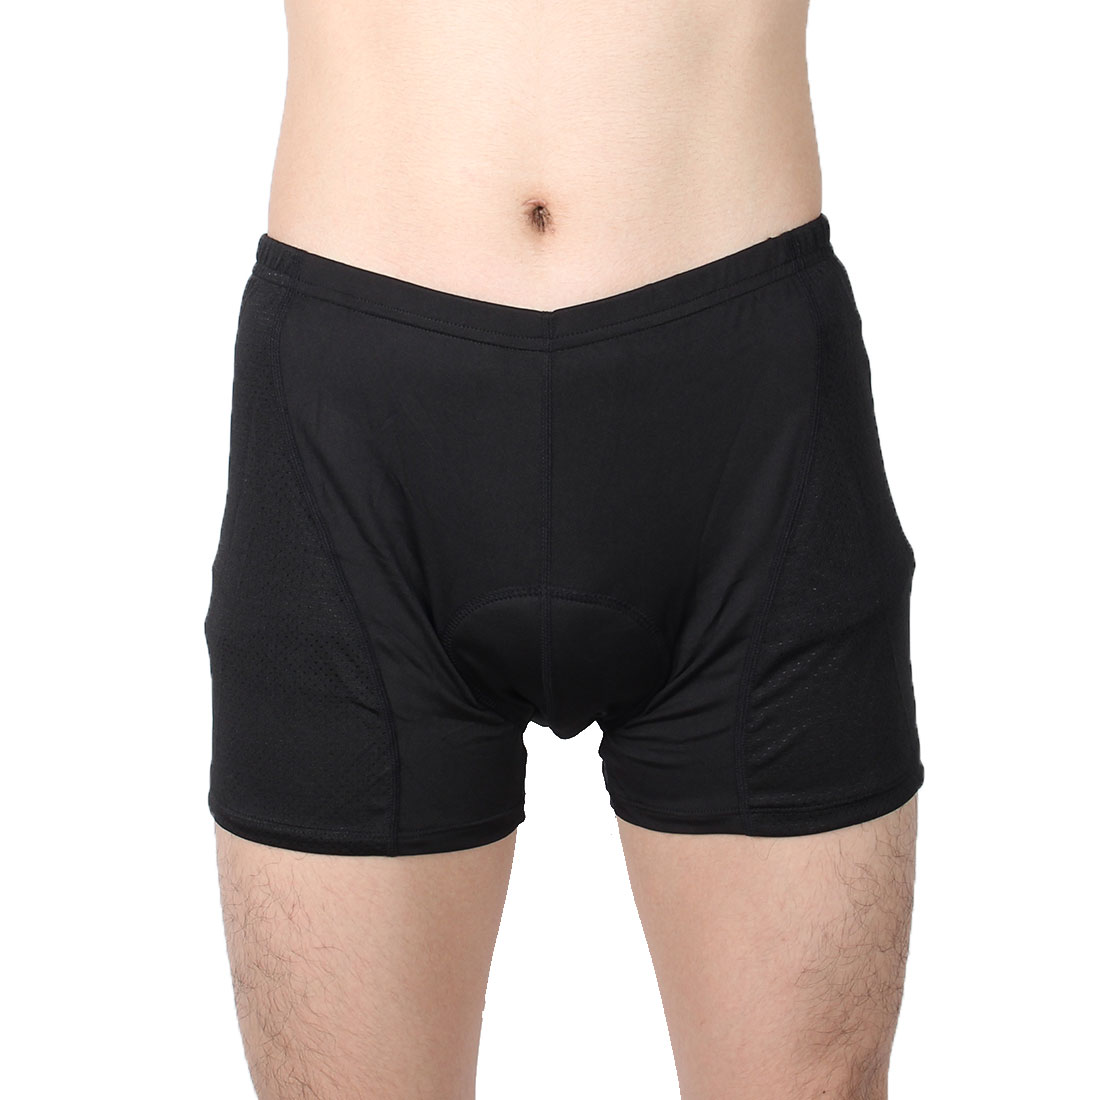 Men Polyester 3D Padded Outdoor Riding Bicycle Biking Underpants Cycling Shorts Black 2XL